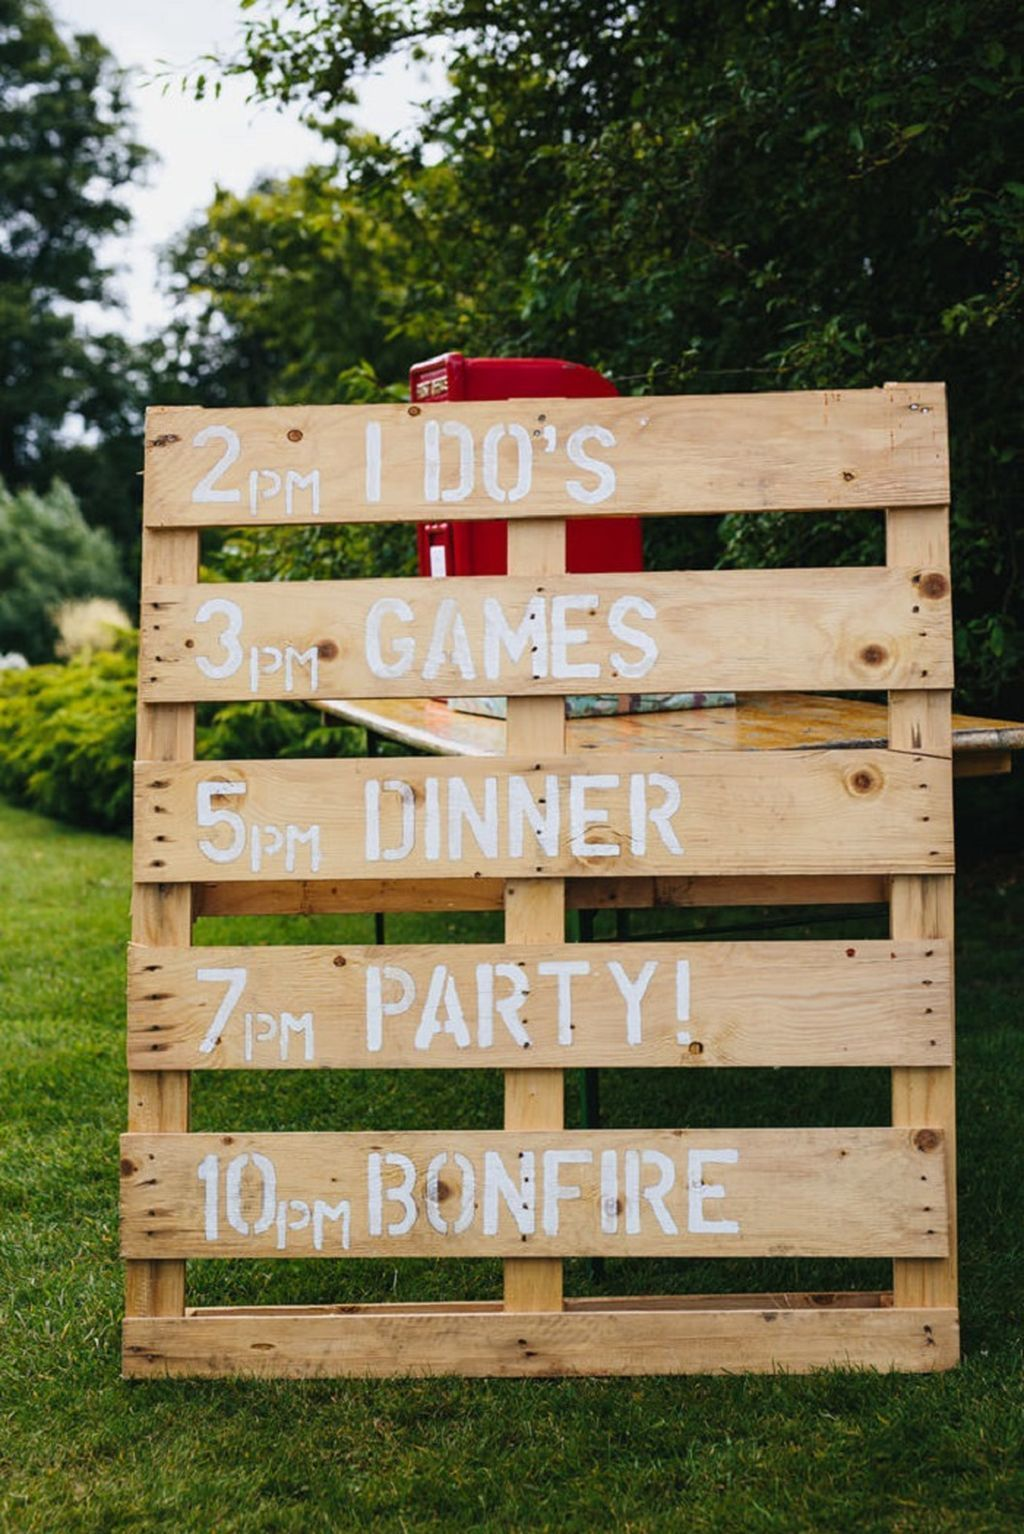 86 cheap and inspiring rustic wedding decorations ideas on a budget inspiring rustic wedding decorations ideas on a budget httpsviscawedding2017061686 cheap inspiring rustic wedding decorations ideas budget junglespirit Gallery